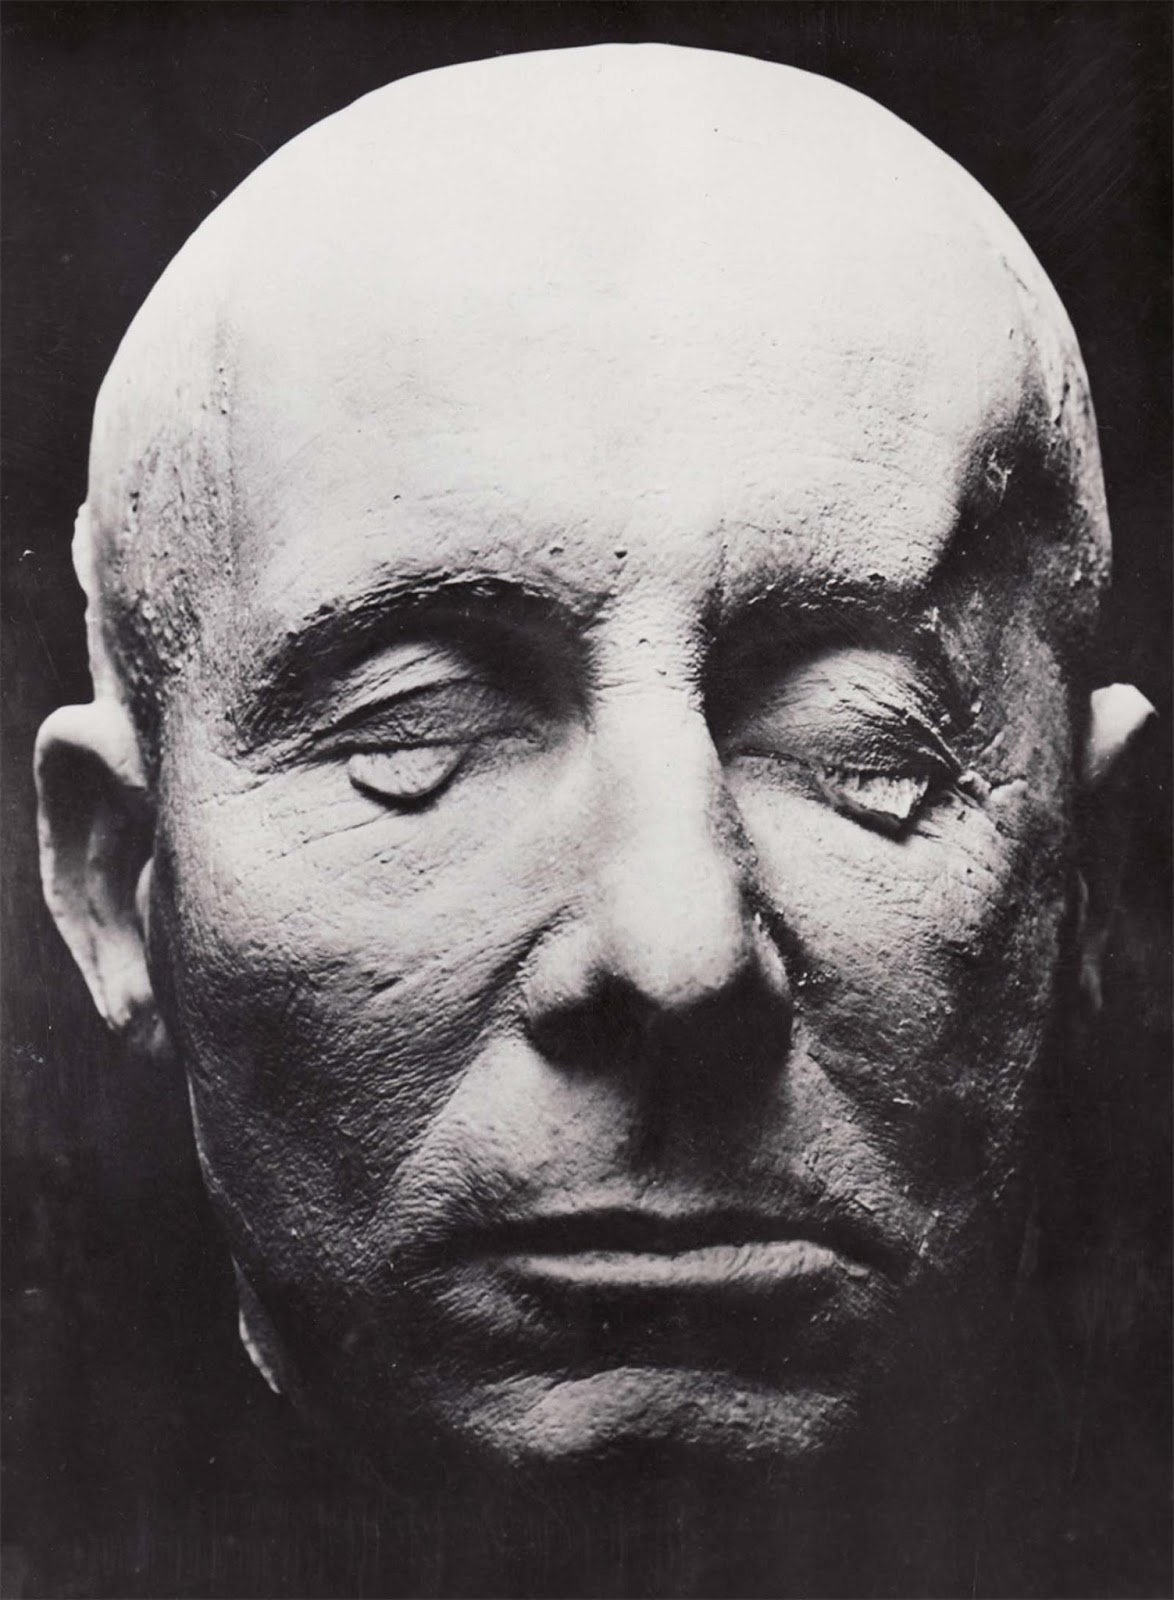 Death mask of Field Marshal Erwin Rommel, discovered by U.S. Seventh Army troops in 1945.